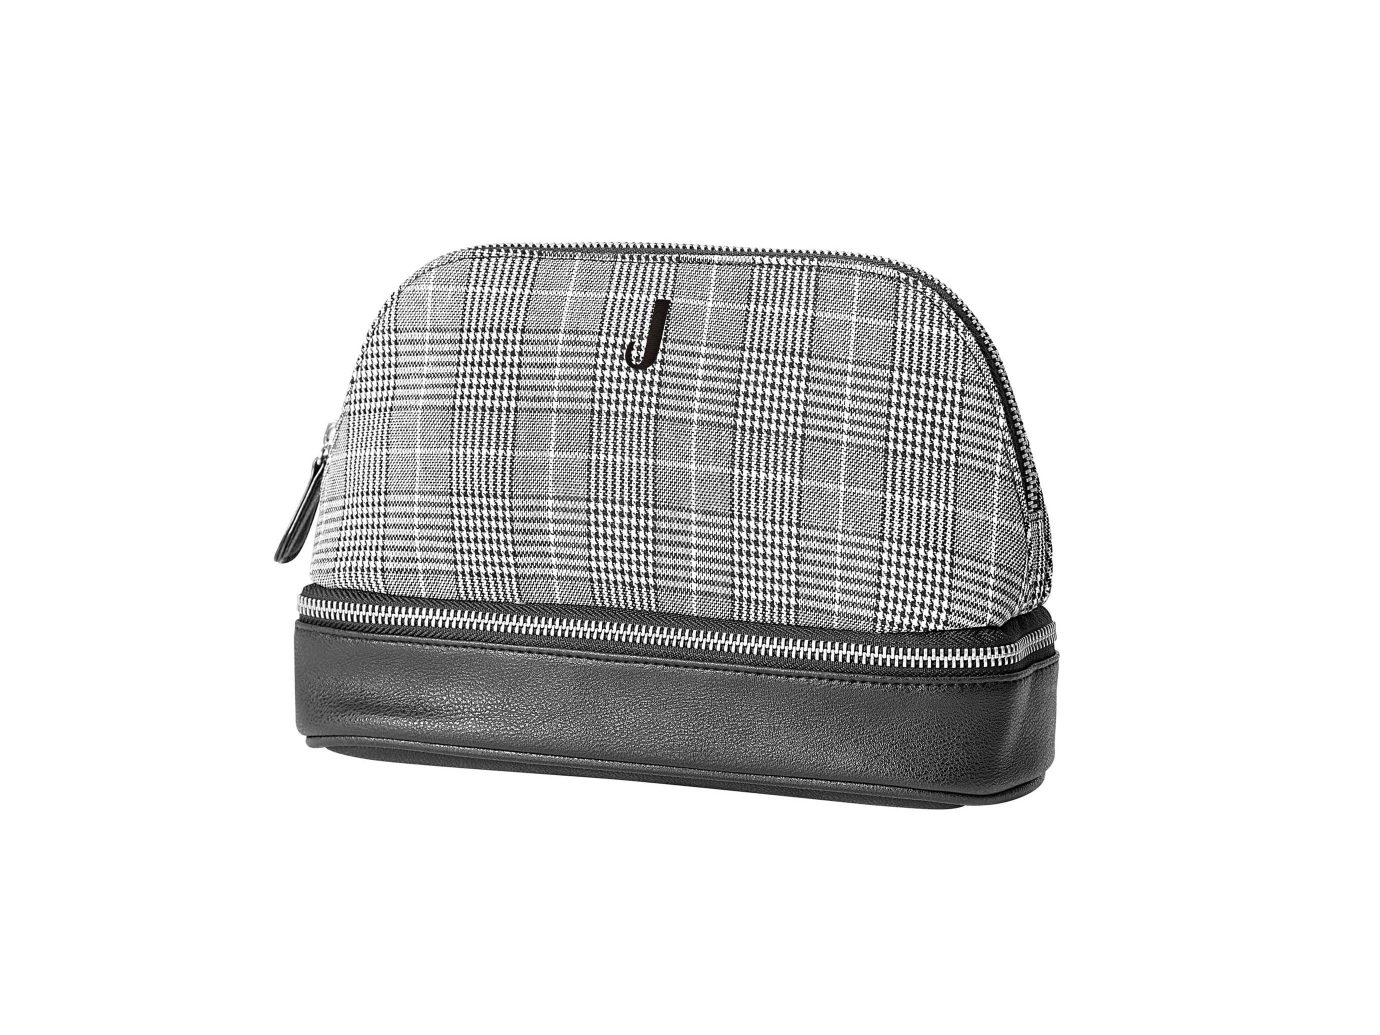 Cathy's Concepts Monogram Glen Plaid Travel Case